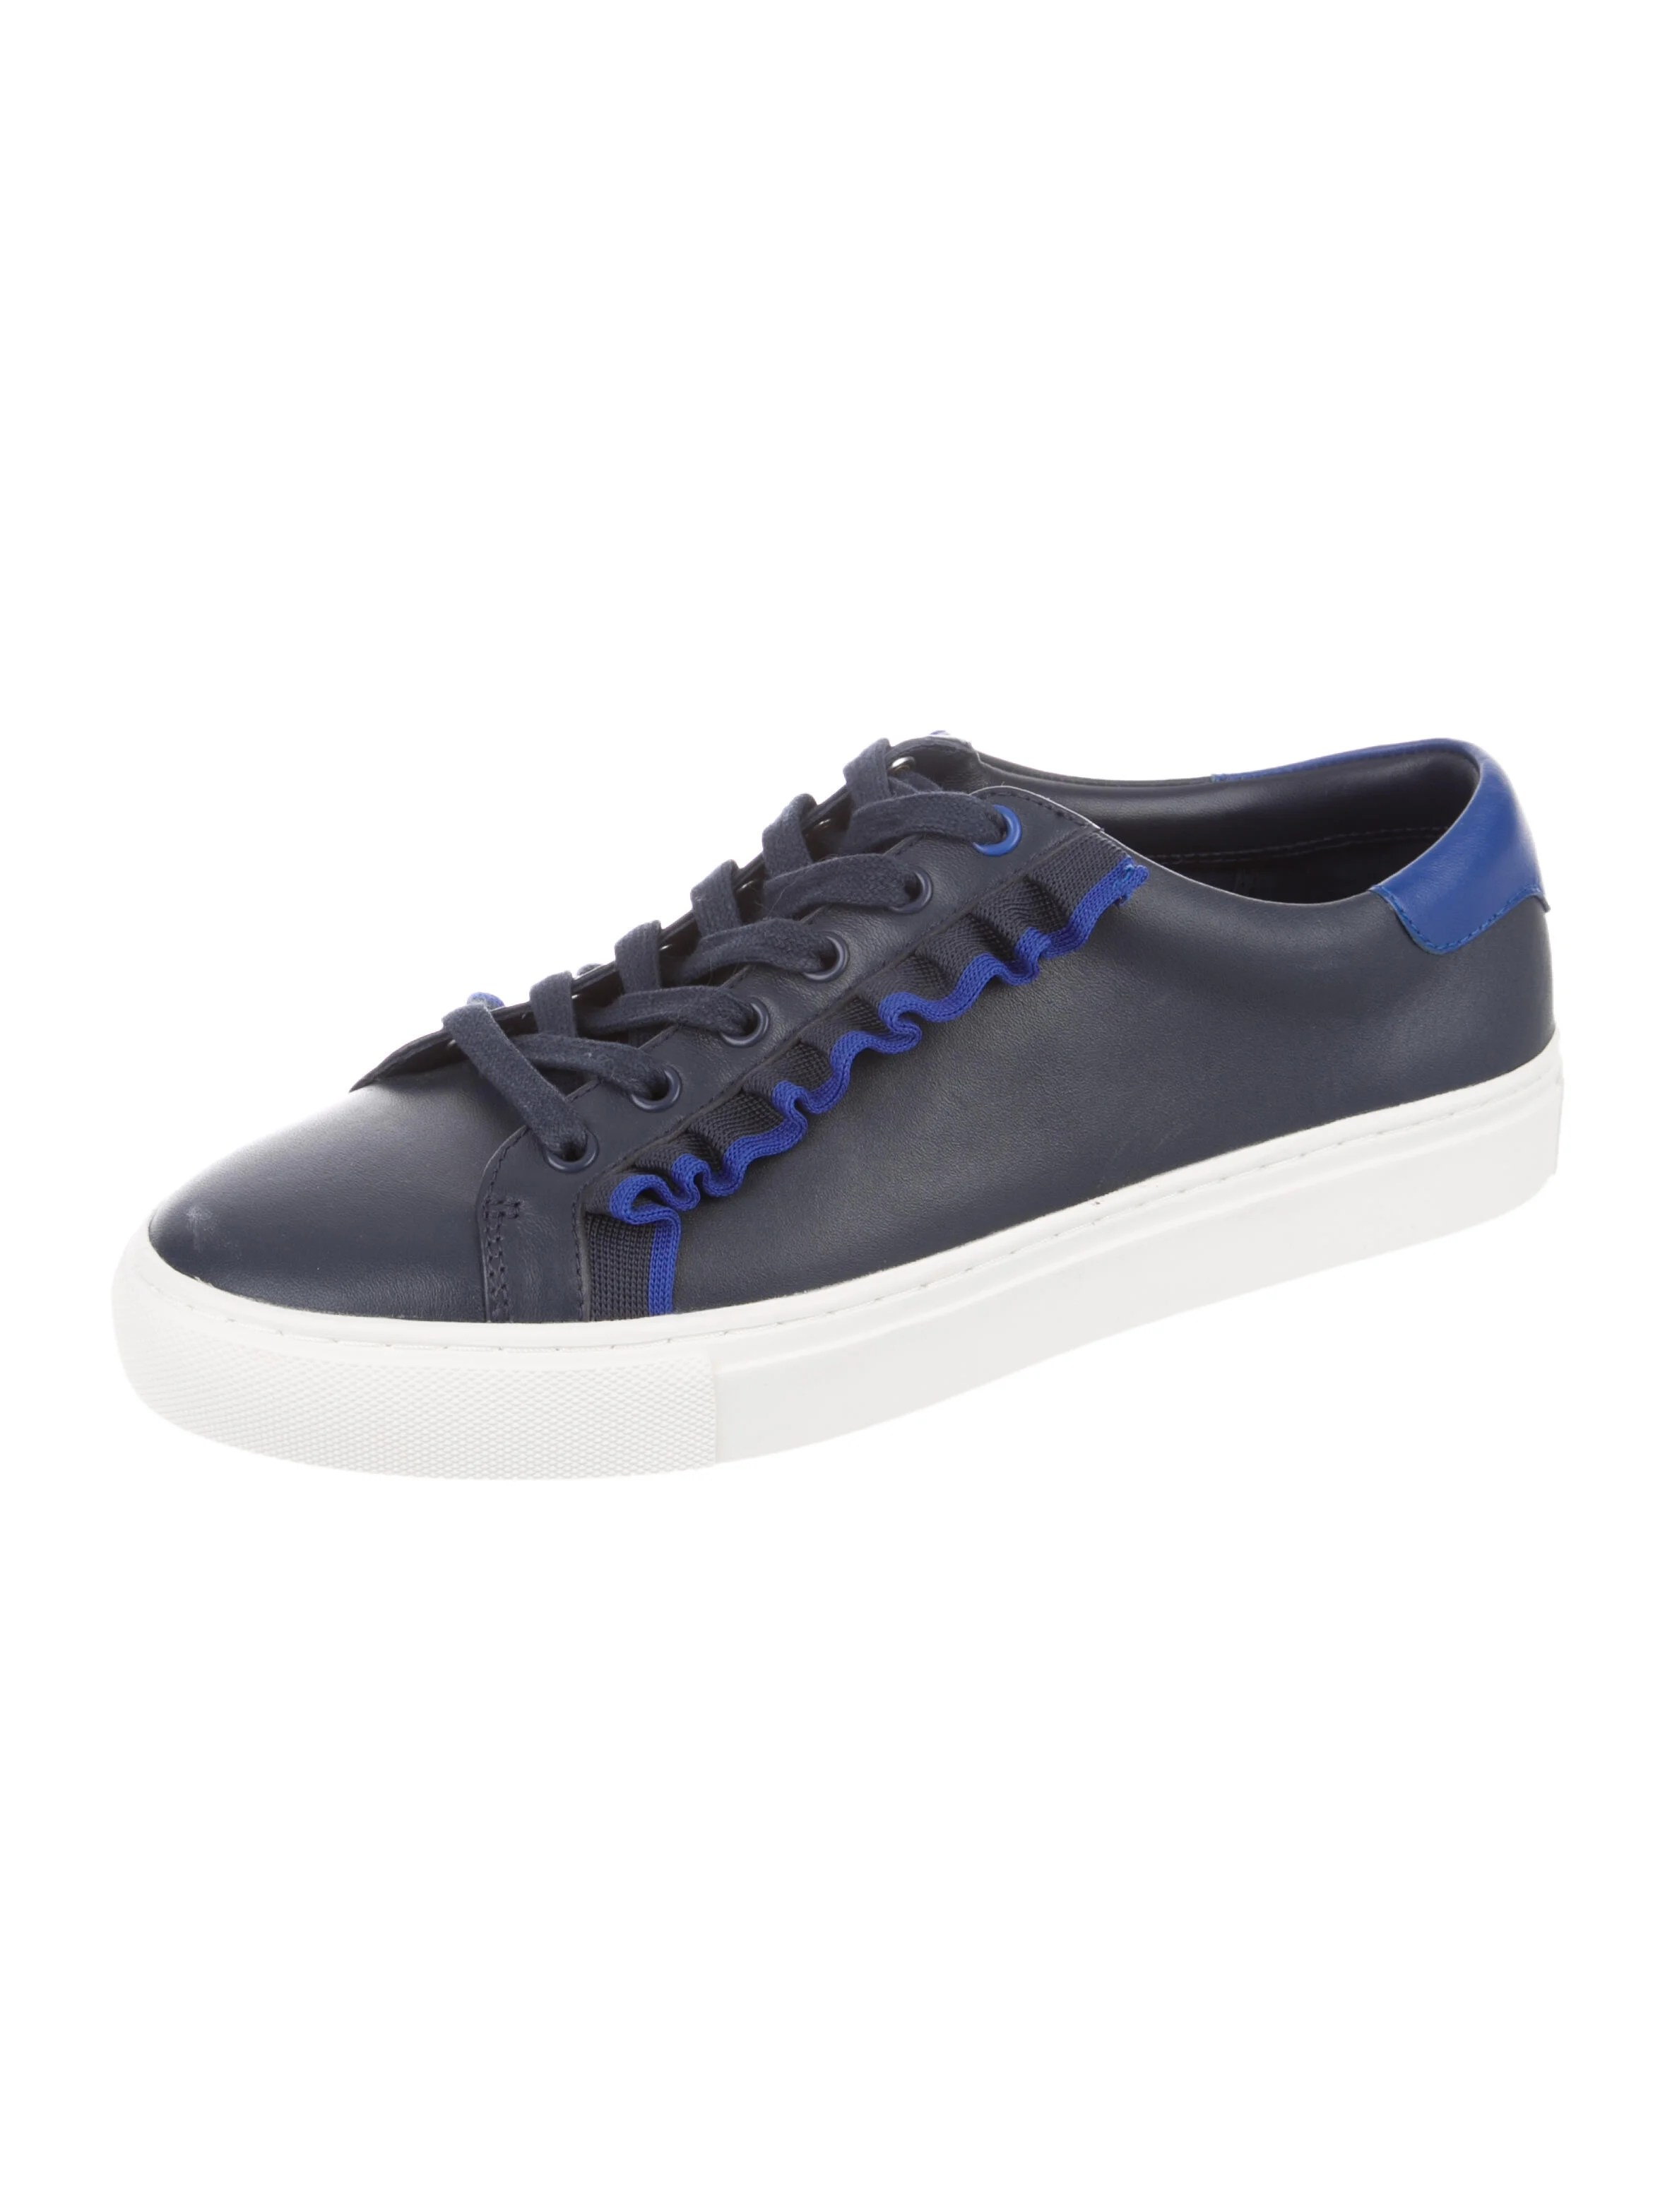 Tory Sport Low-Top Sneakers Leather Sneakers - Shoes - WTORY23655 | The RealReal